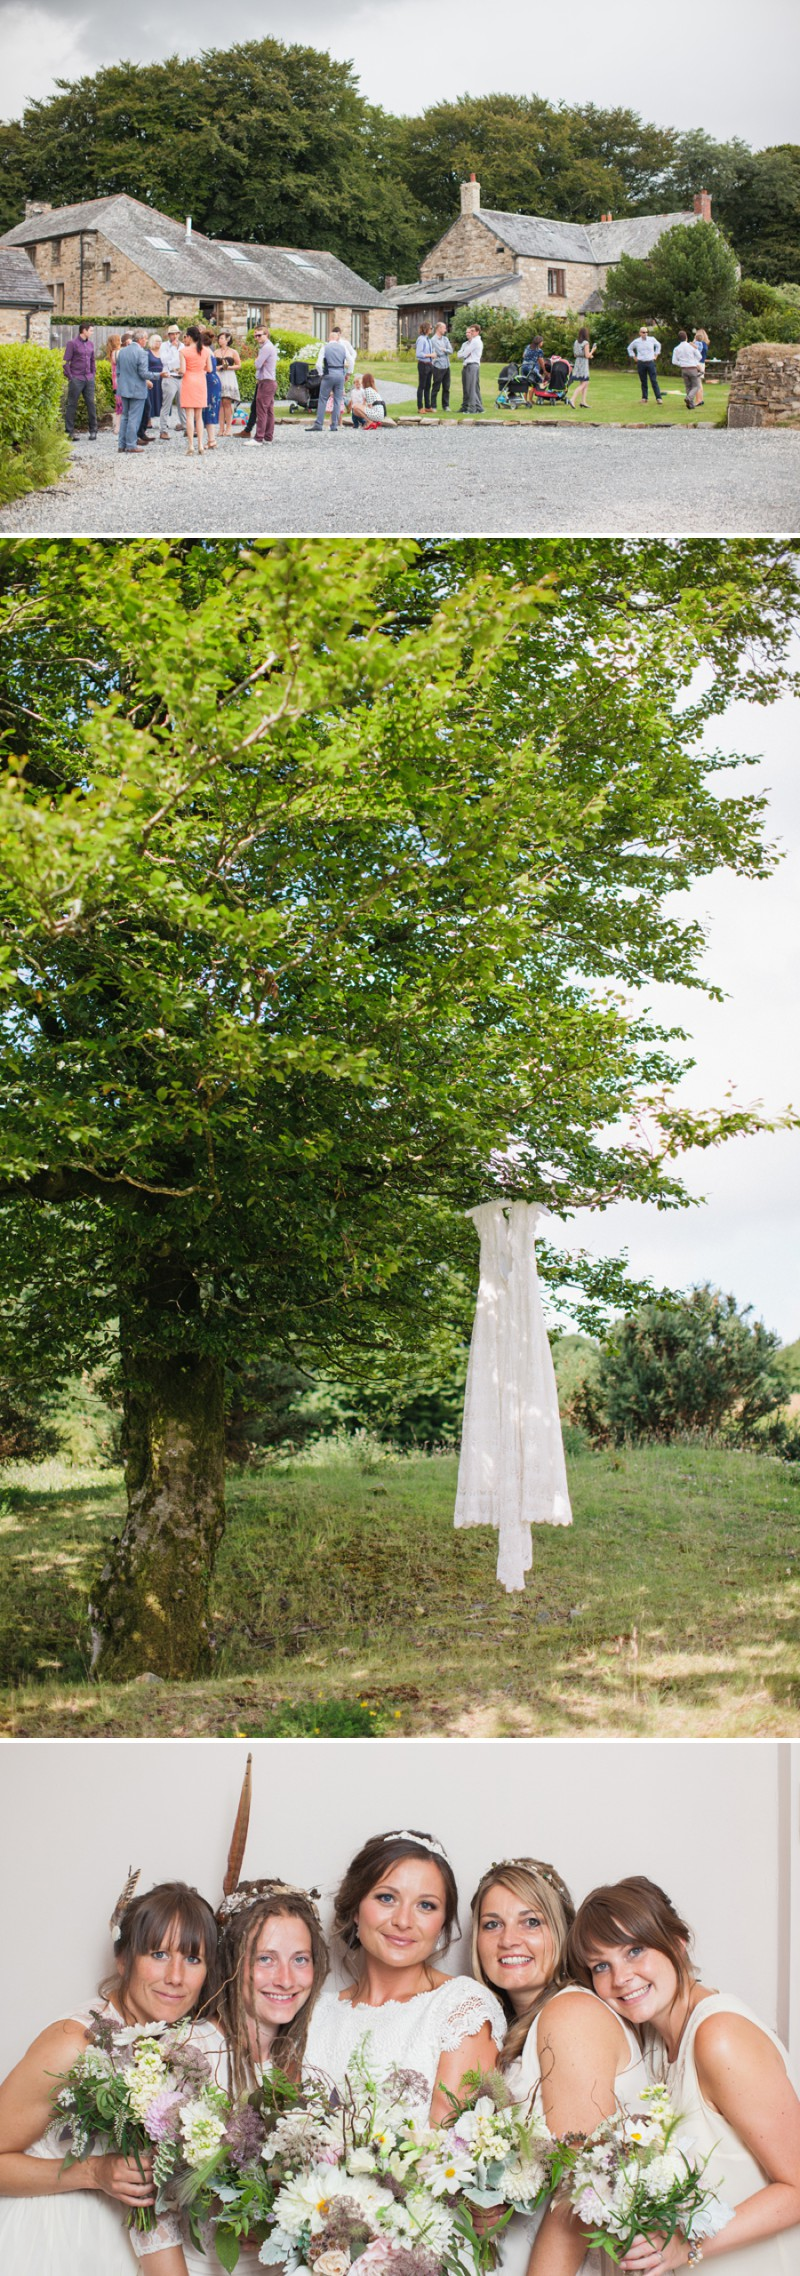 A Beautiful Rustic Peter Pan Themed Wedding With A Daughters Of Simone Wedding Dress At Trevenna Barns in Cornwall With Photography By Hayley Savage._0001